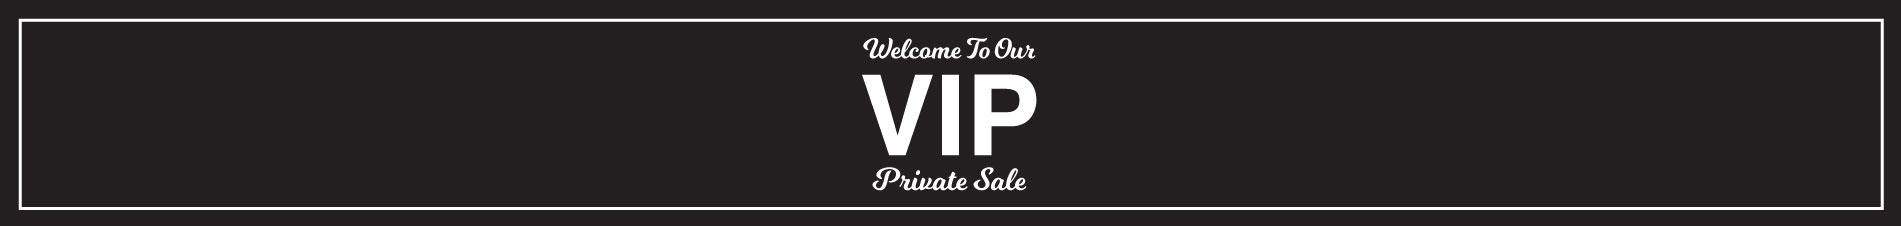 PrivateSale_PageHeader_Claresholm-16